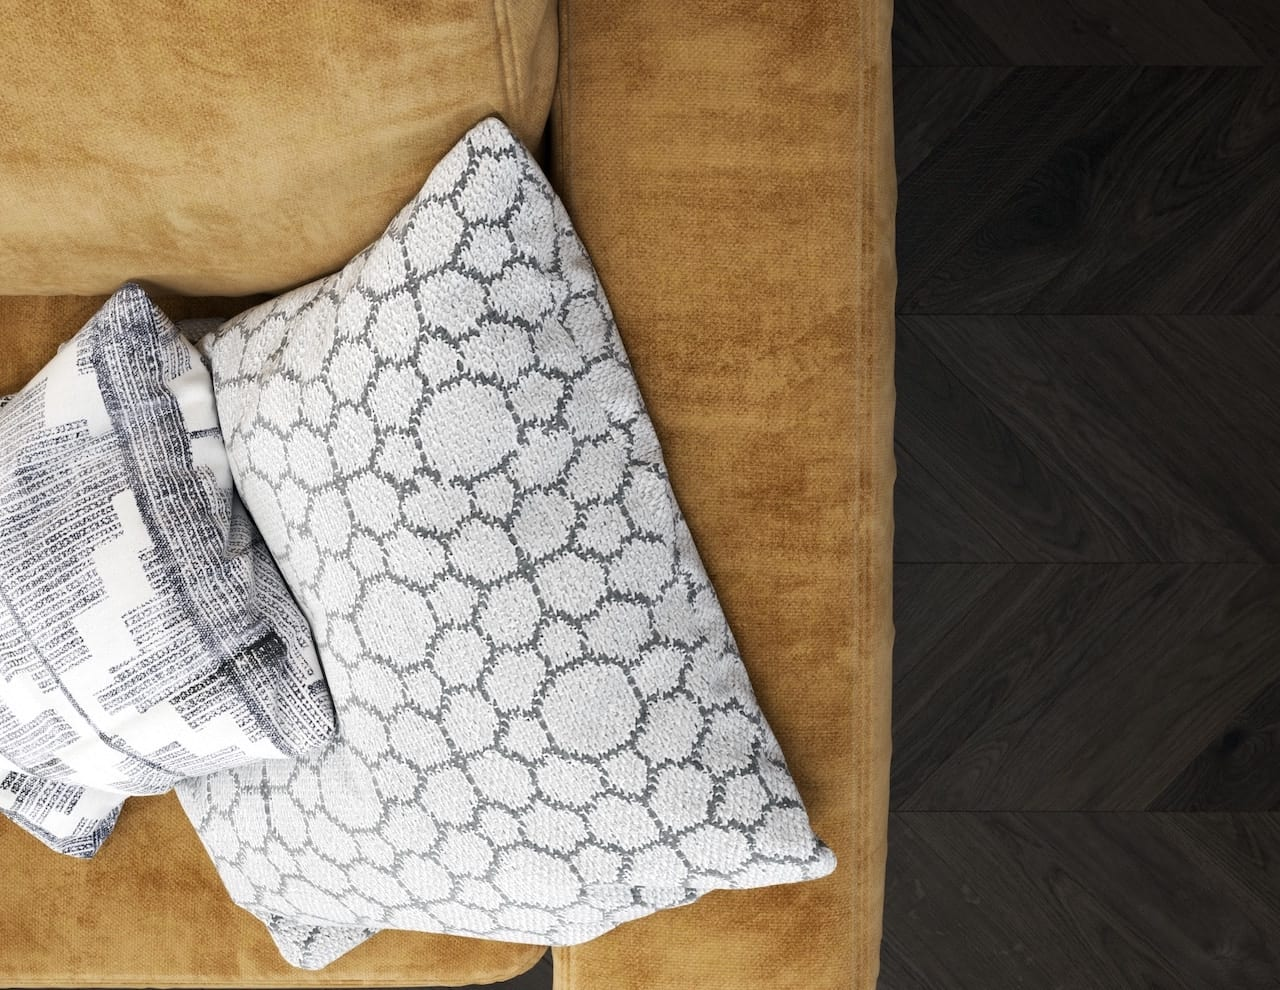 image of pillows with patterns